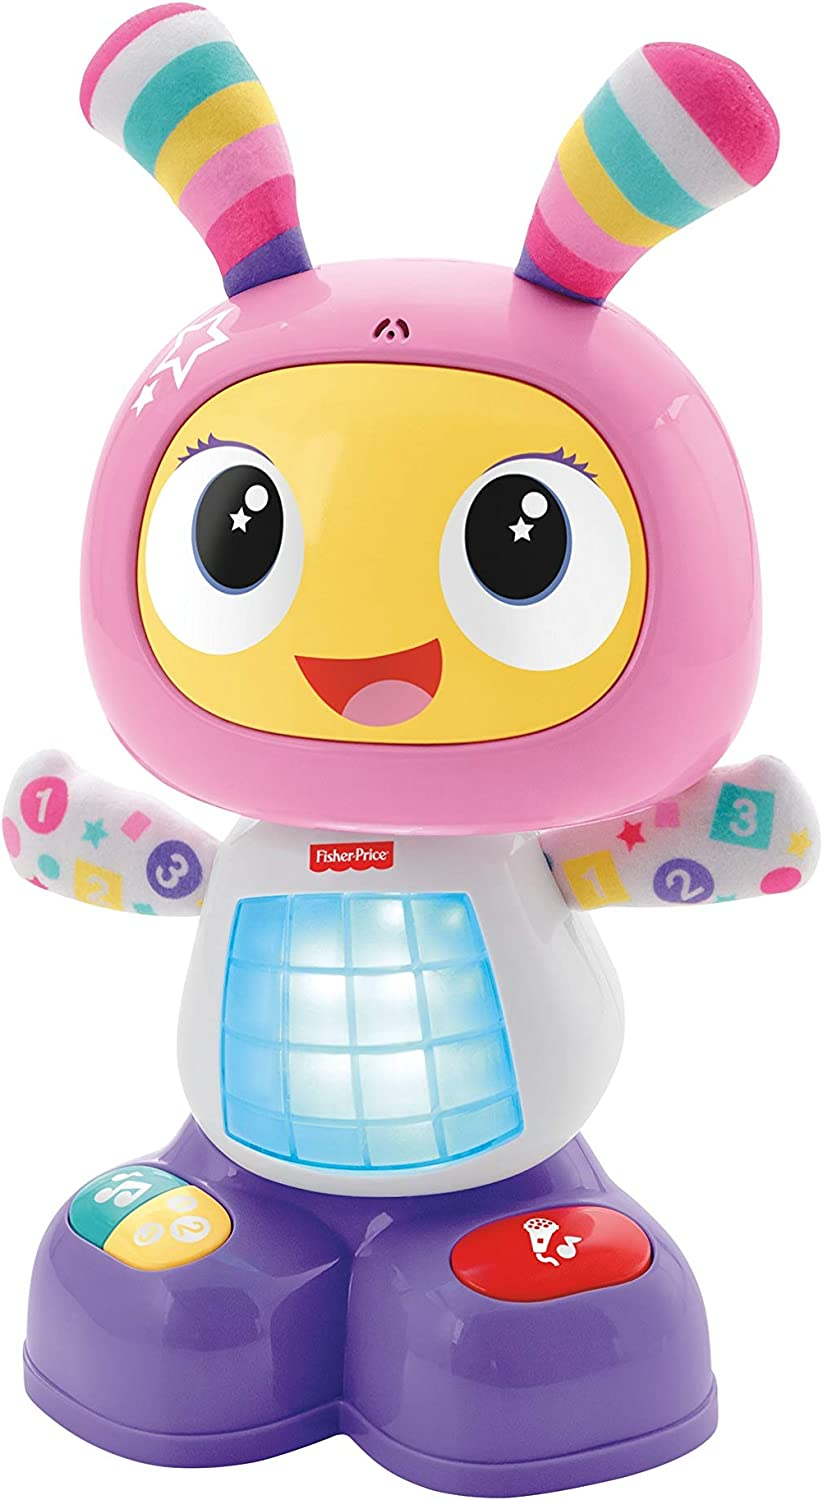 Fisher-Price - Robot interactivo Robita - color rosa y morado - juguetes educativos - (Mattel FBC99)